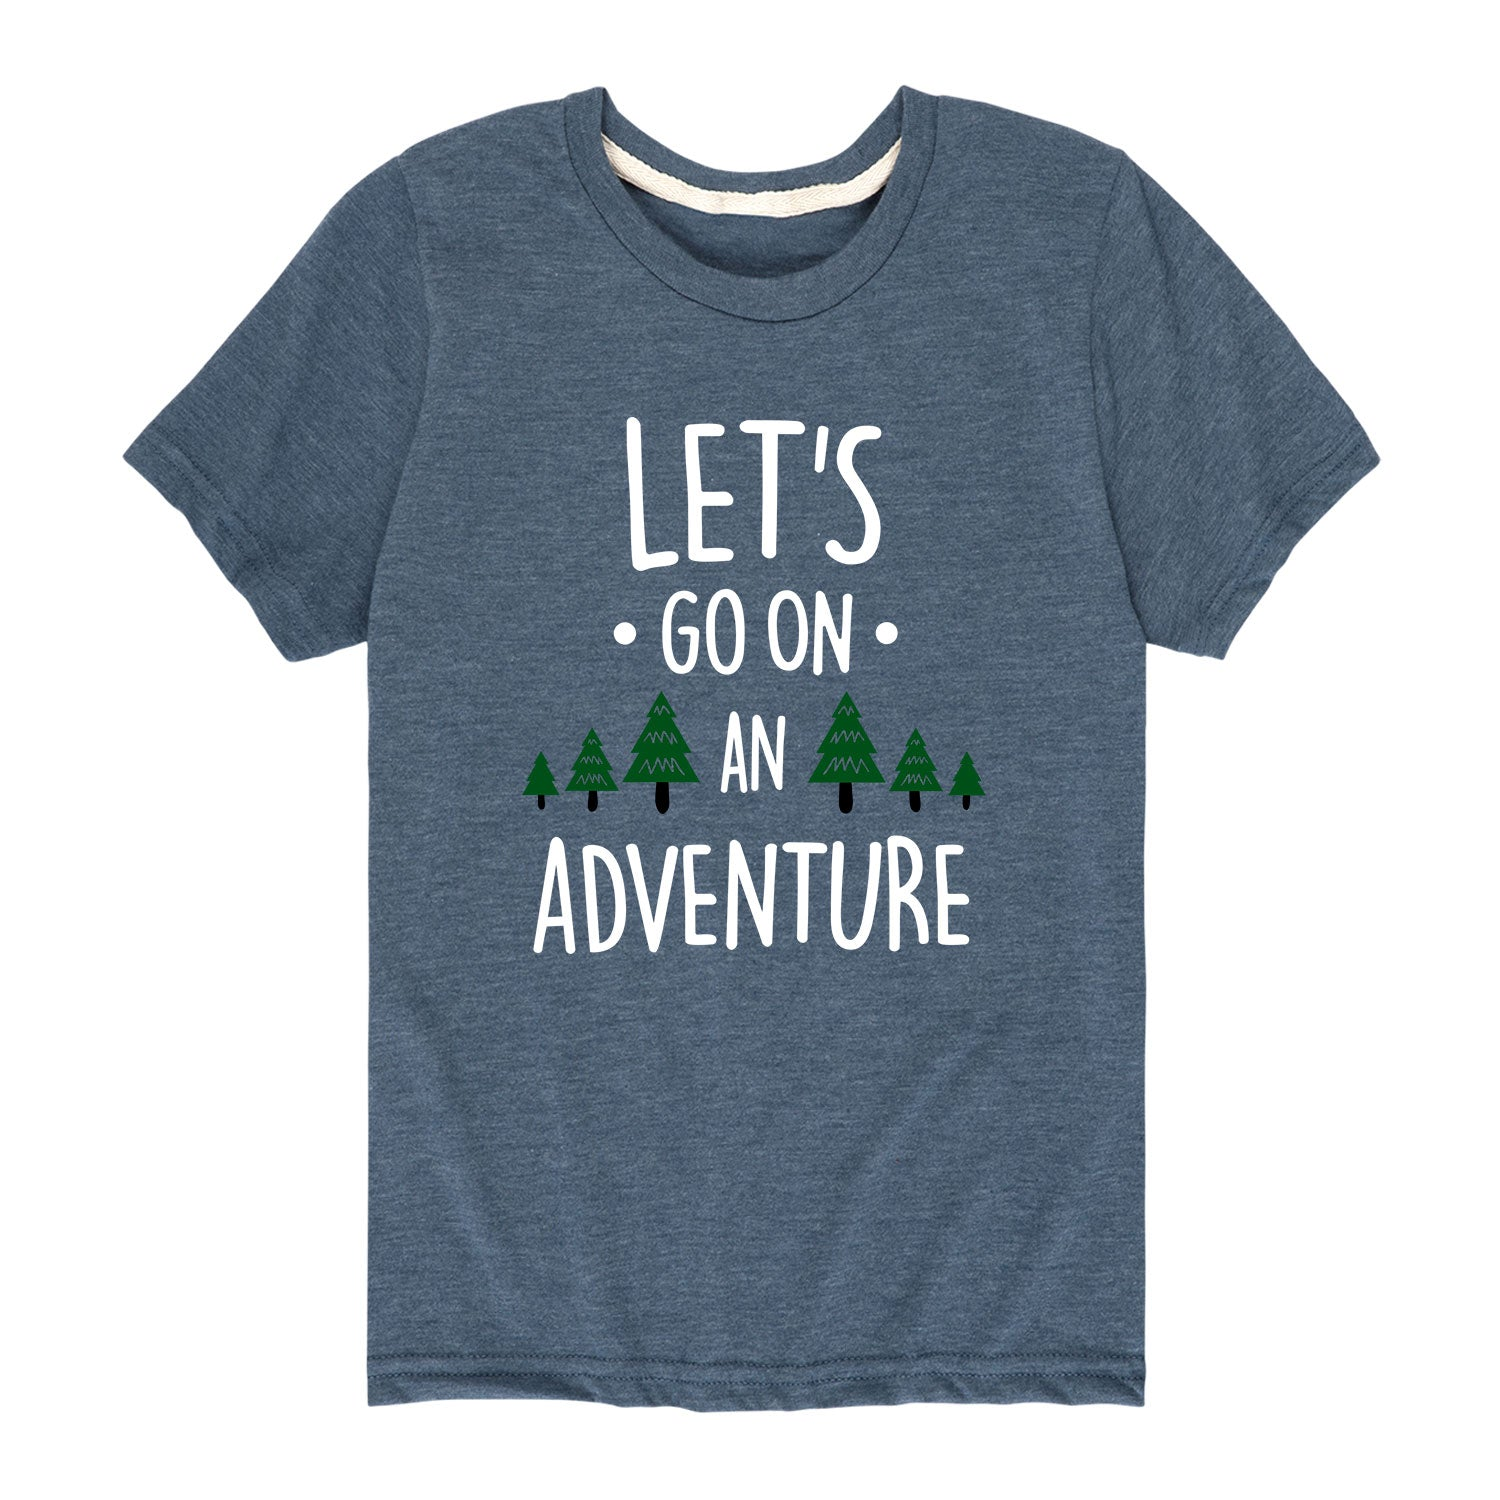 Let's Go On An Adventure - Youth & Toddler Short Sleeve T-Shirt